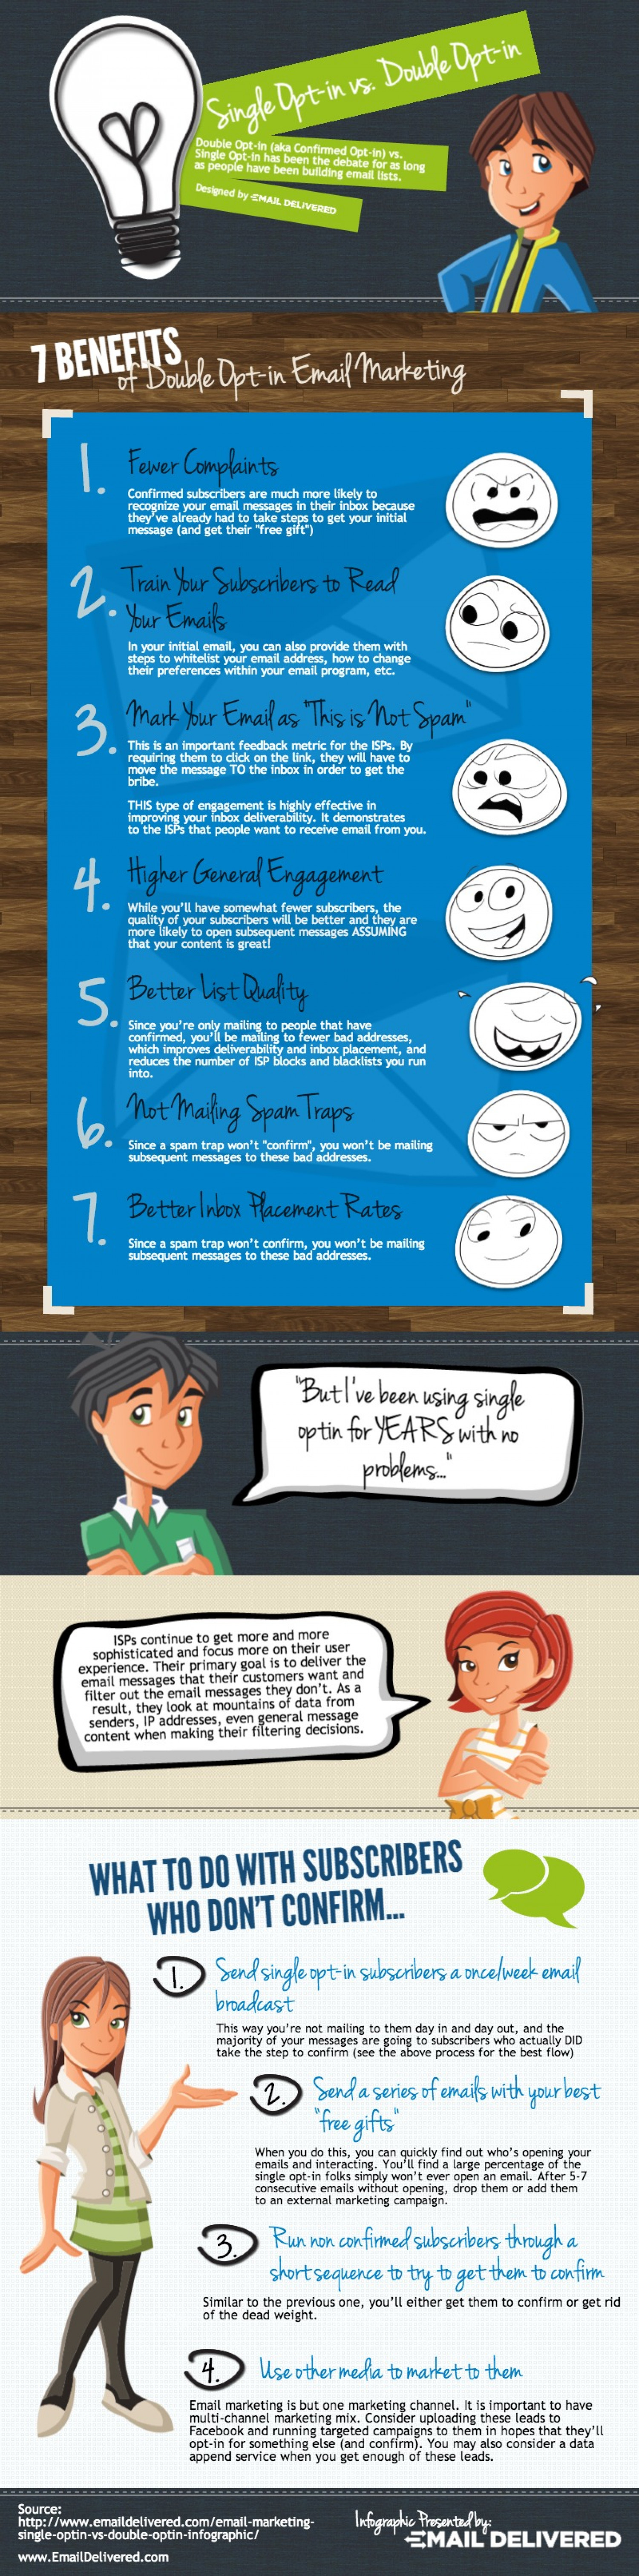 Email Marketing: Single Opt-in vs. Double Opt-in Infographic